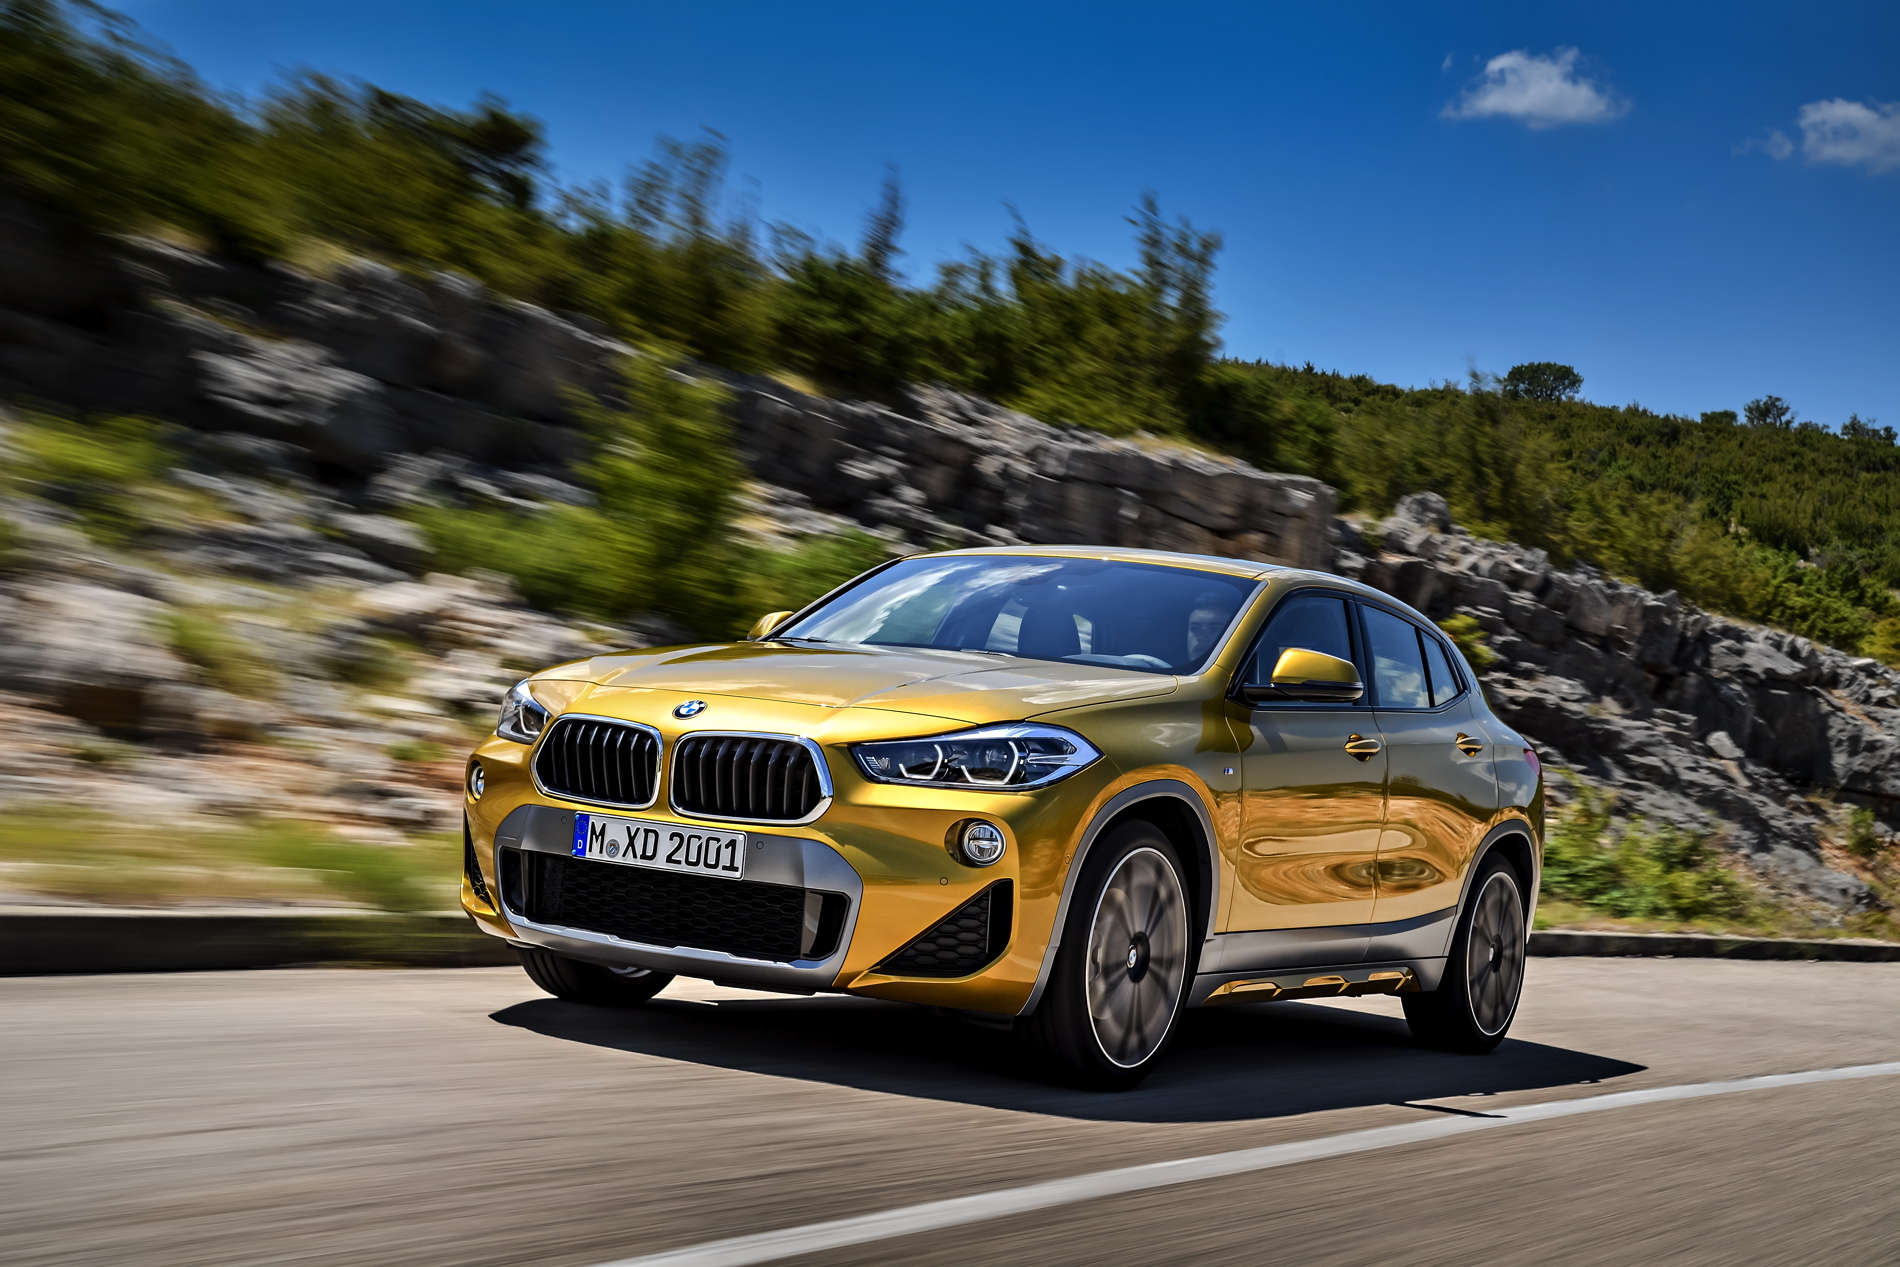 BMW X2 images 28